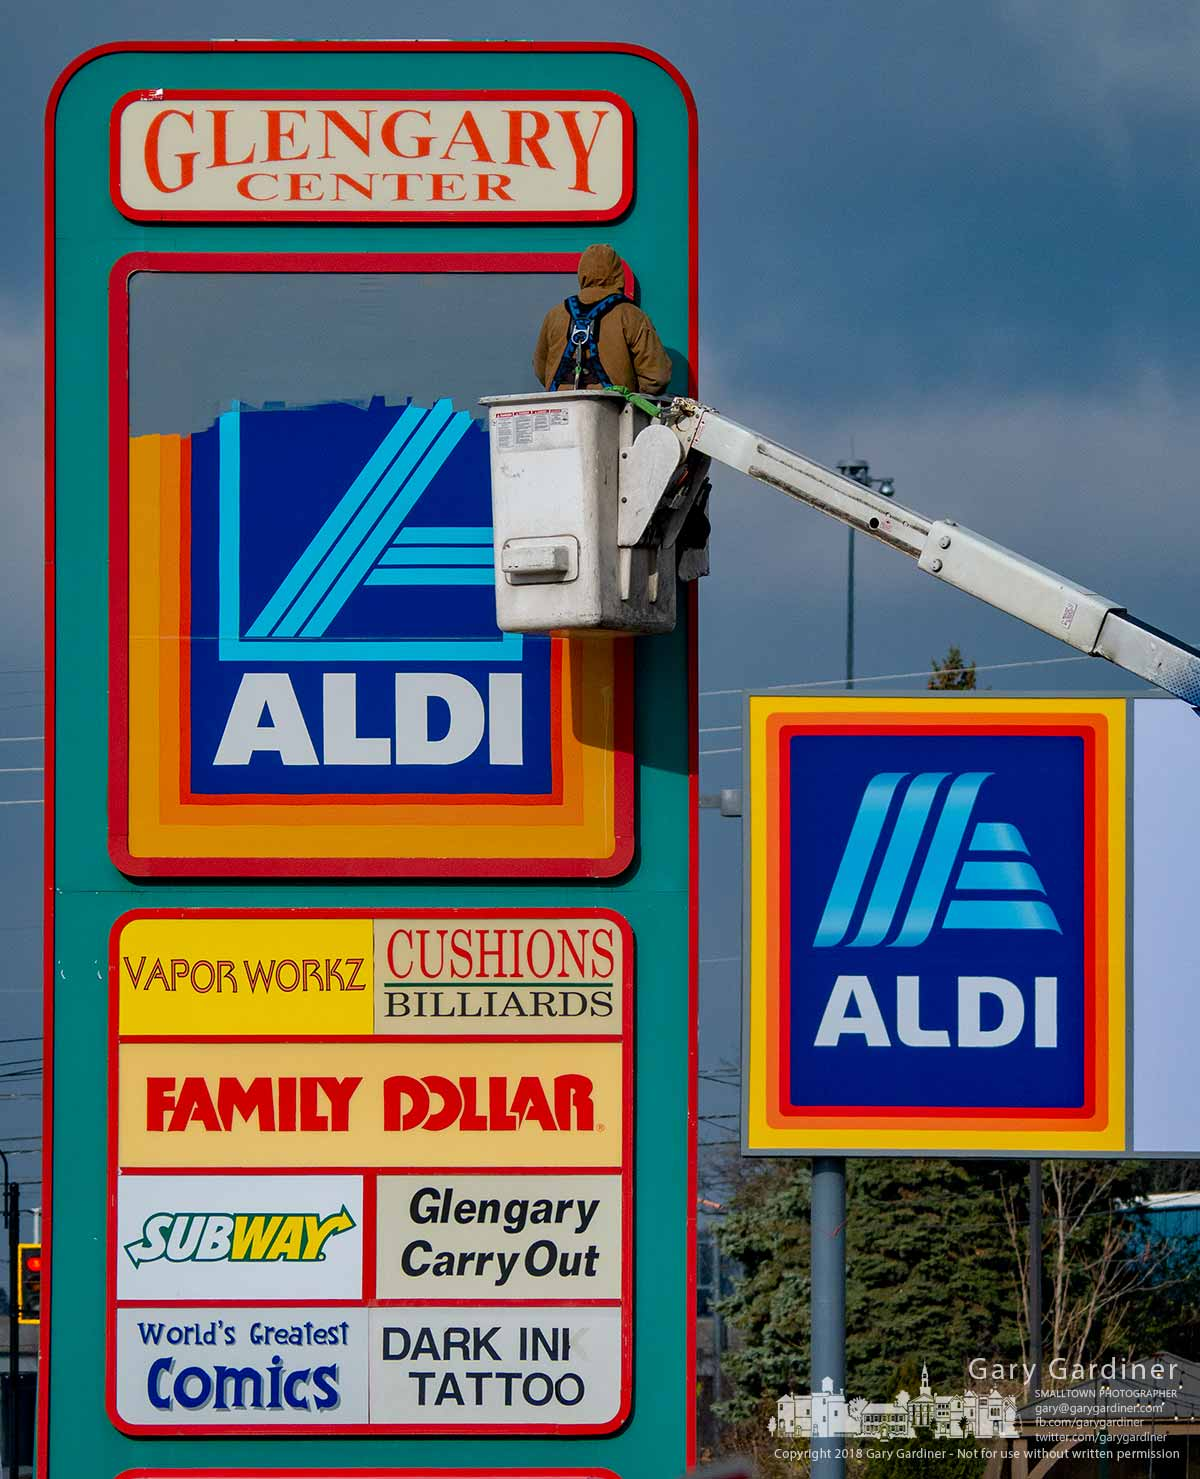 A worker paints over the original Aldi grocery store sign at Glengary Center after completing the addition of signage for the new Aldi set for a grand opening Thursday morning. My Final Photo for Nov. 28, 2018.